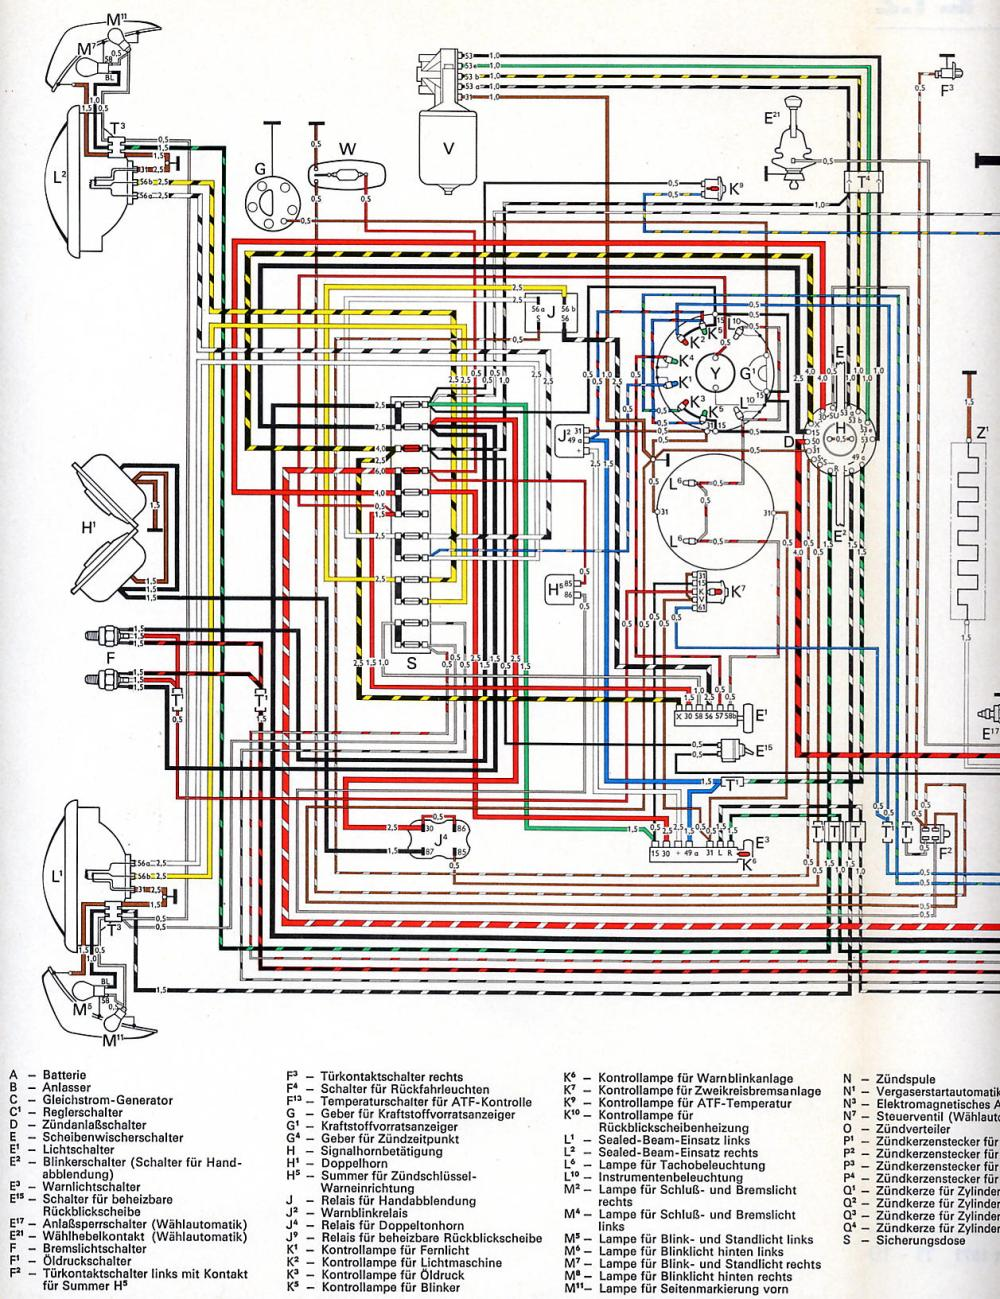 medium resolution of karmann ghia usa from august 1971 1 wiring diagram shoptalkforums com vw golf mk1 wiring diagram pdf at cita asia